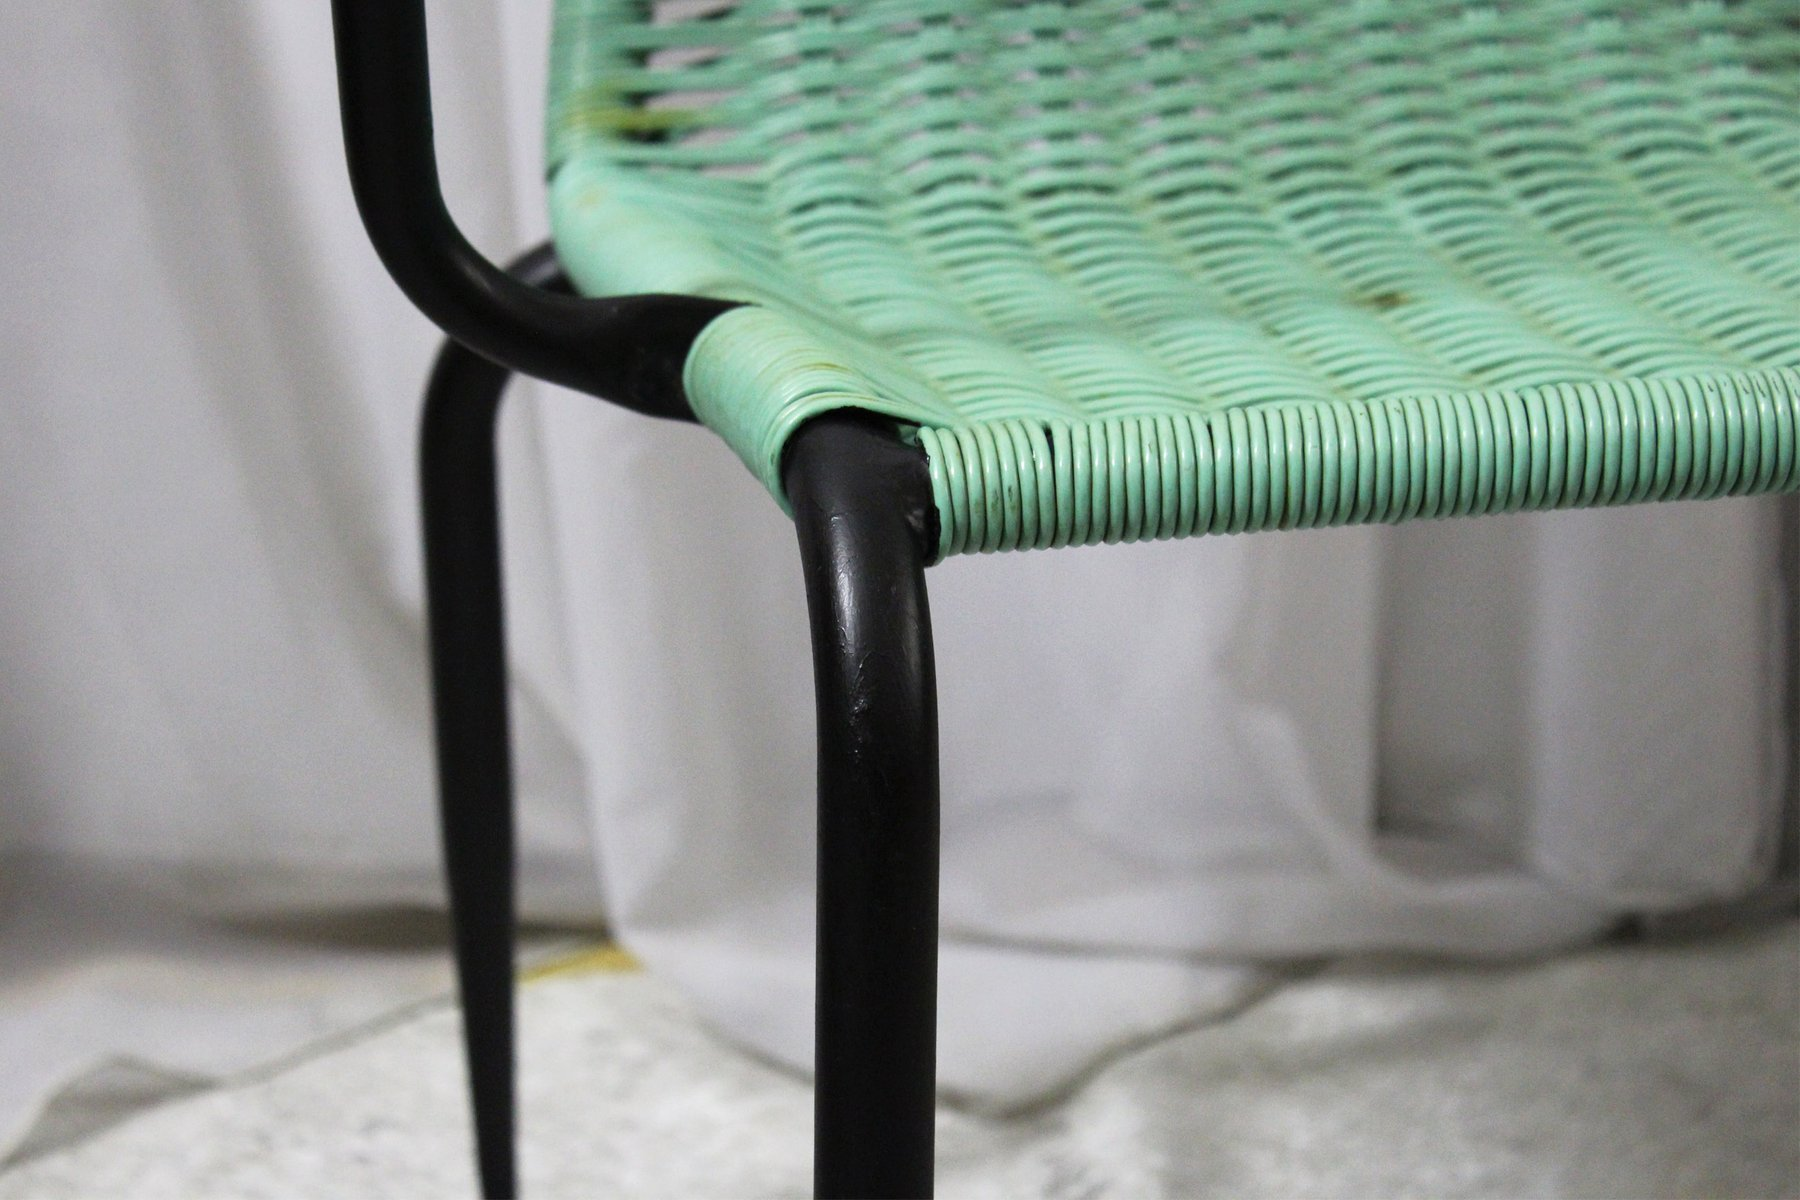 woven plastic garden chairs frontgate chaise lounge 1950s set of 4 for sale at pamono 12 381 00 price per